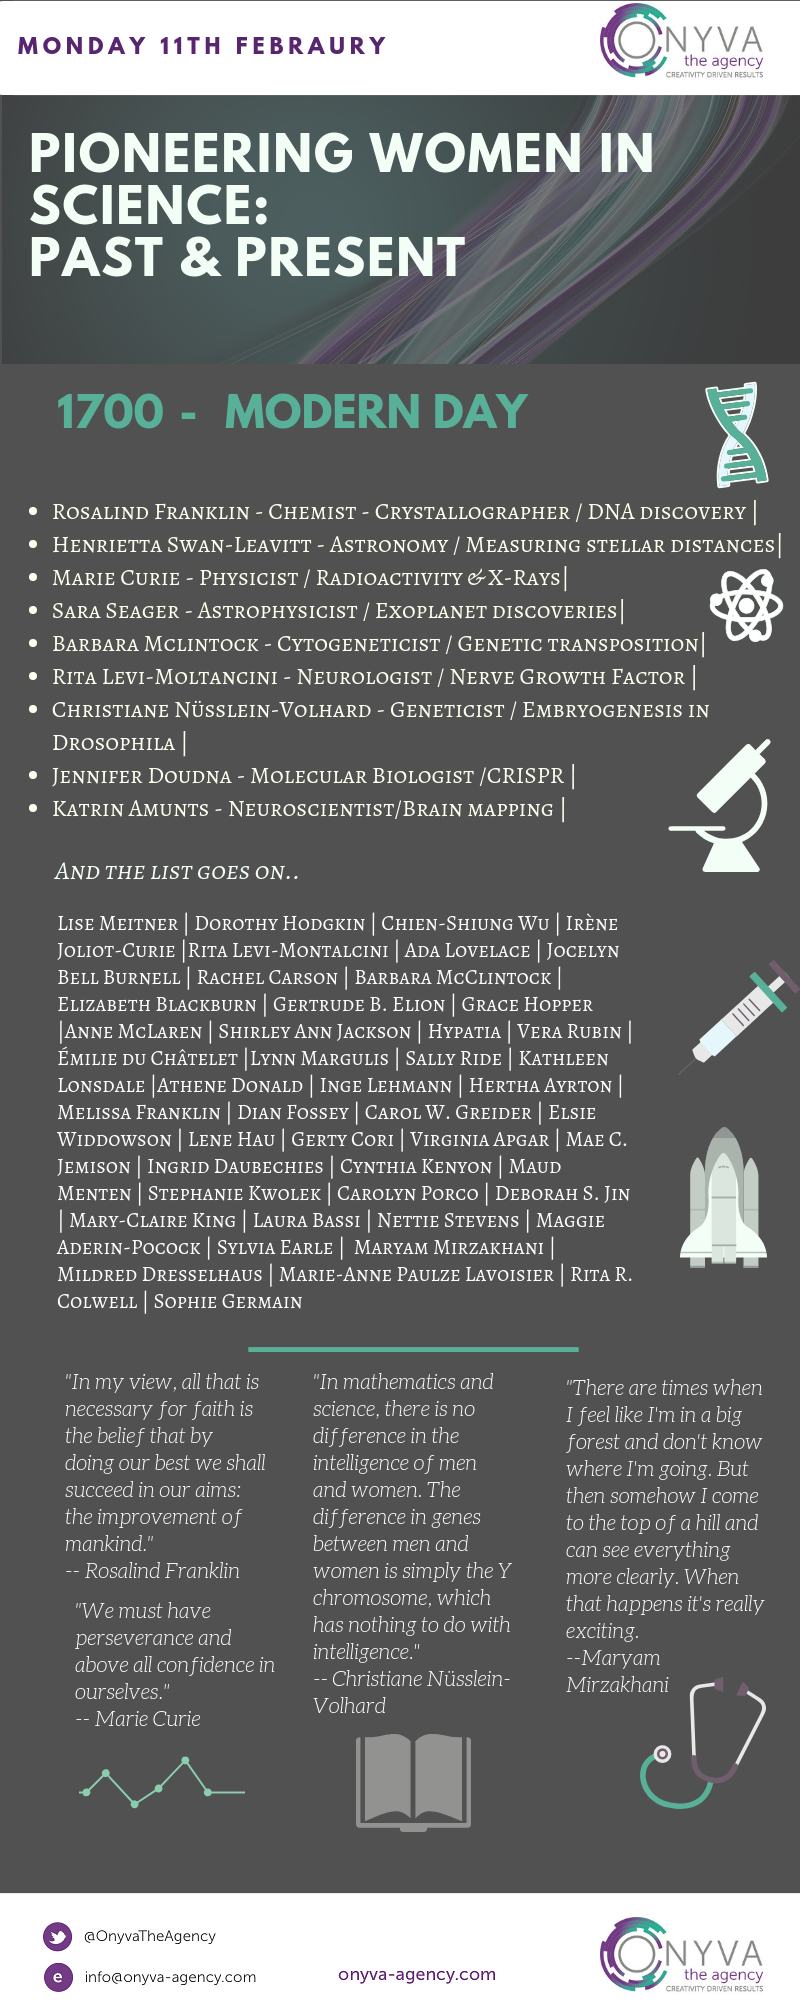 Women in Science 2019 infographic